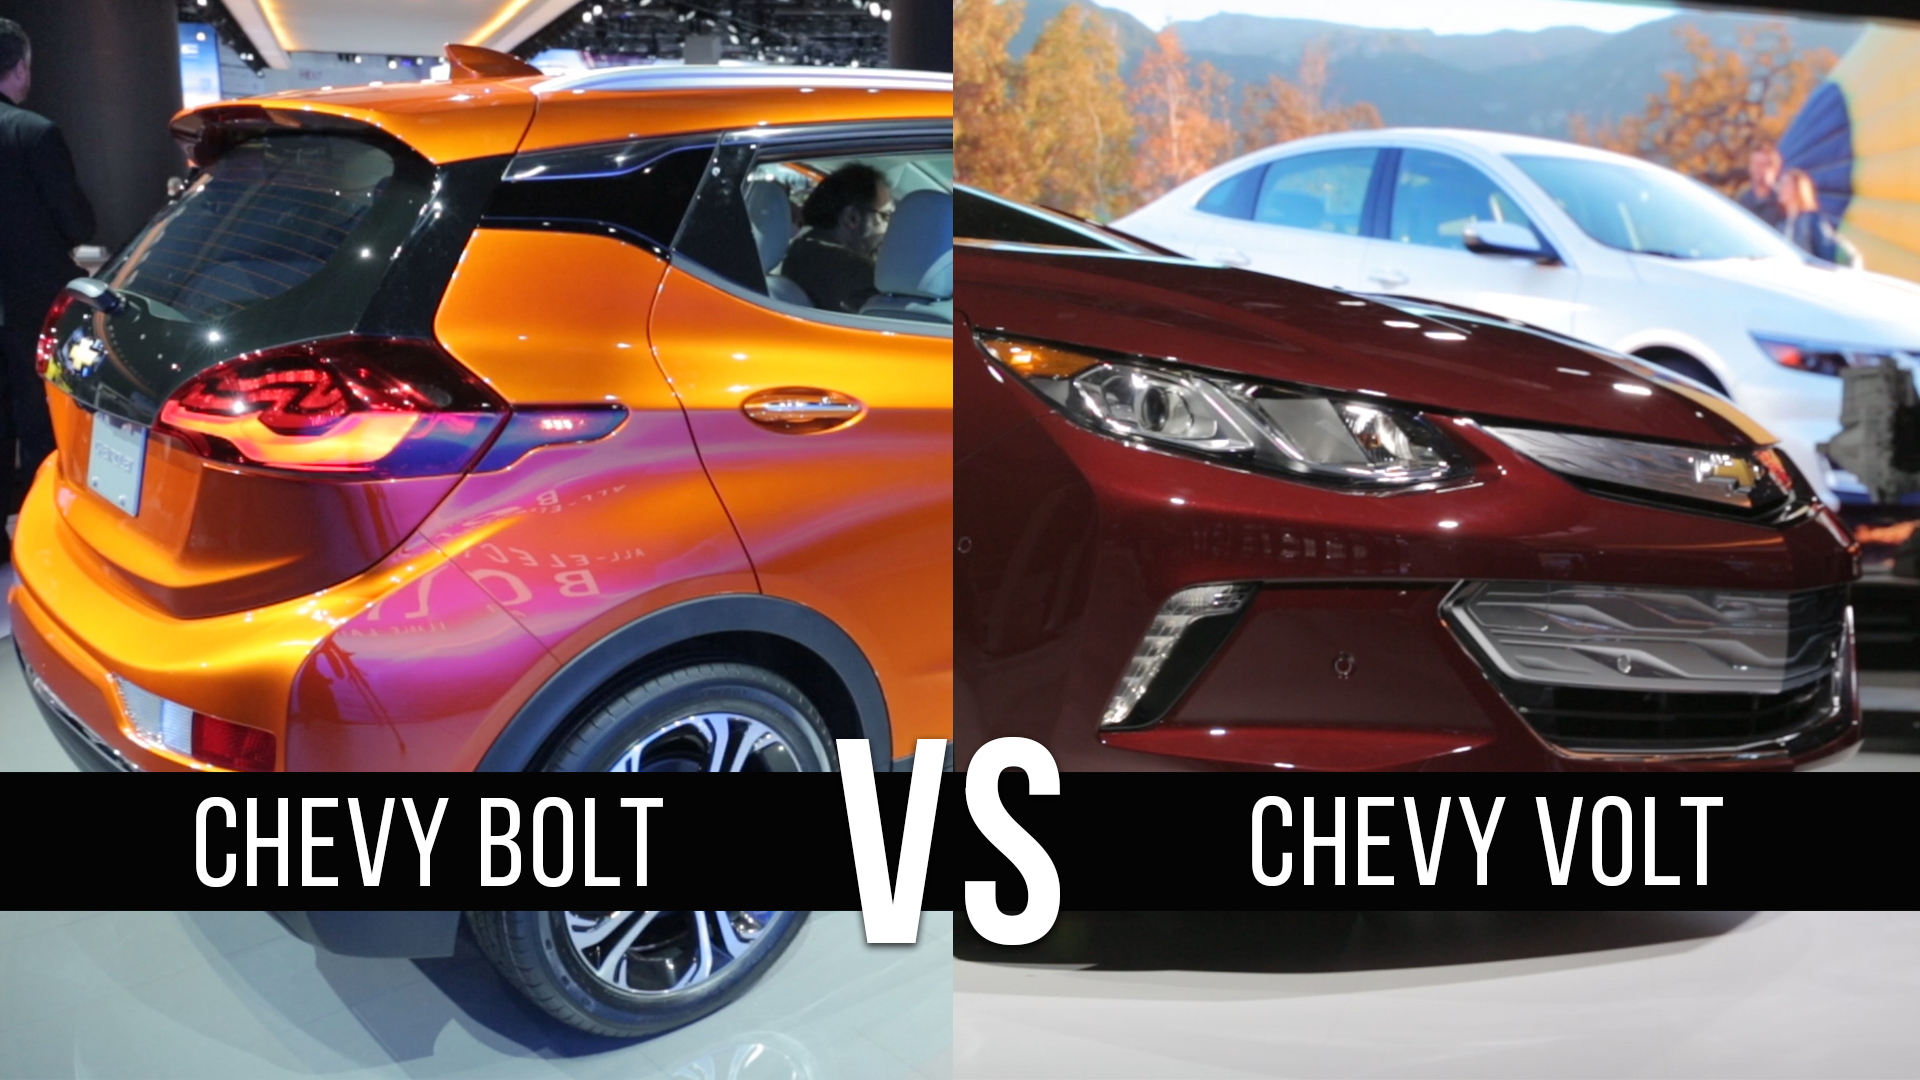 Video: Chevrolet Bolt vs Volt: Why not both?